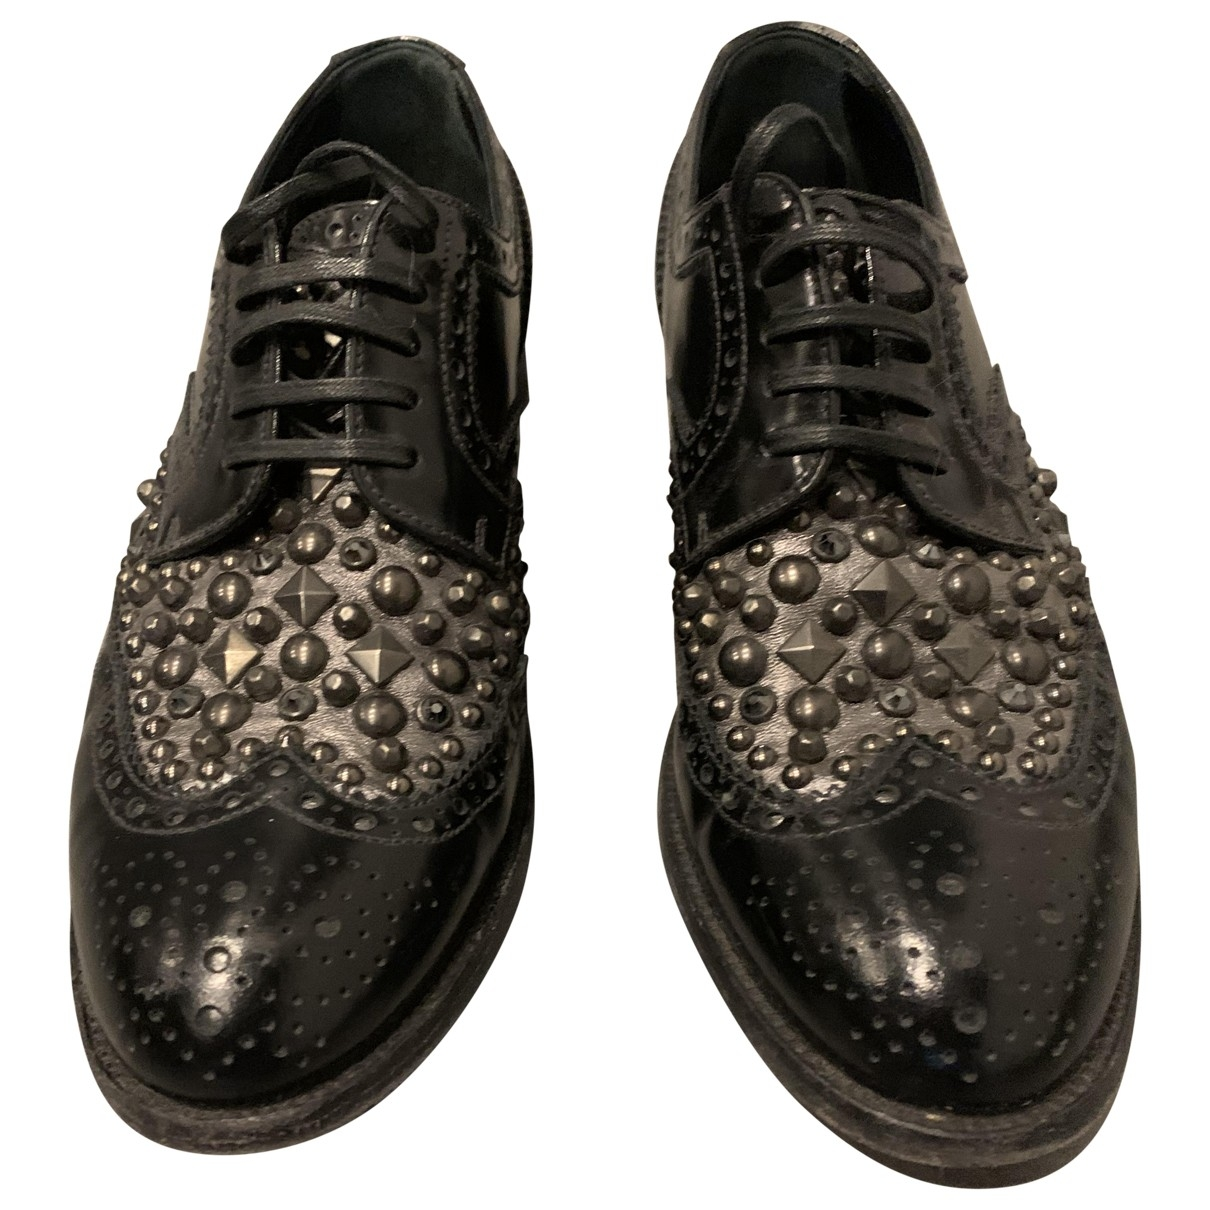 Dolce & Gabbana \N Black Leather Lace ups for Women 38 IT